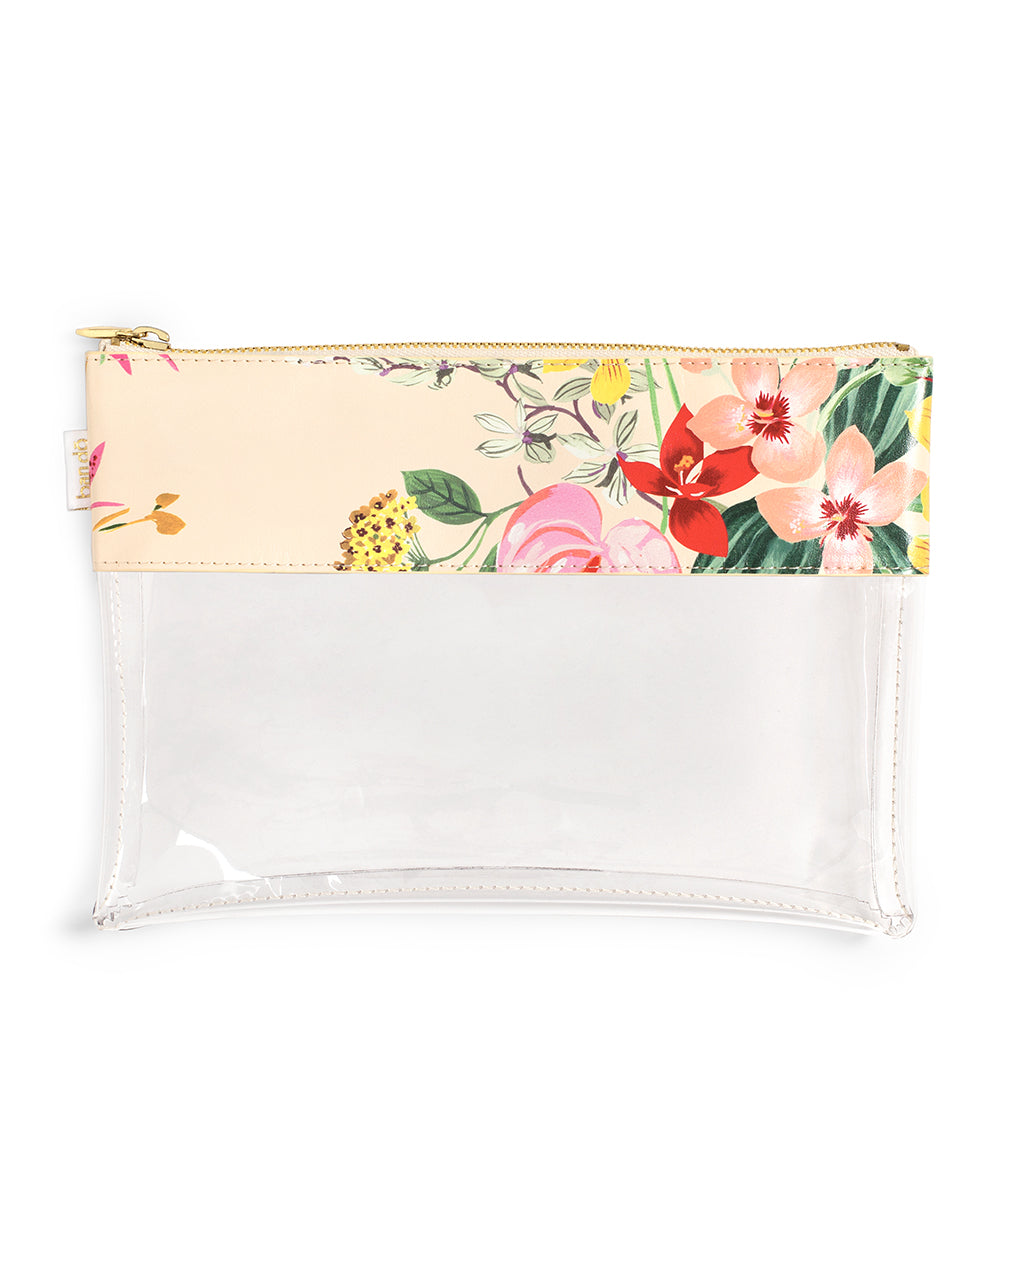 pouch with a translucent bottom and a leatherette trim with a floral pattern